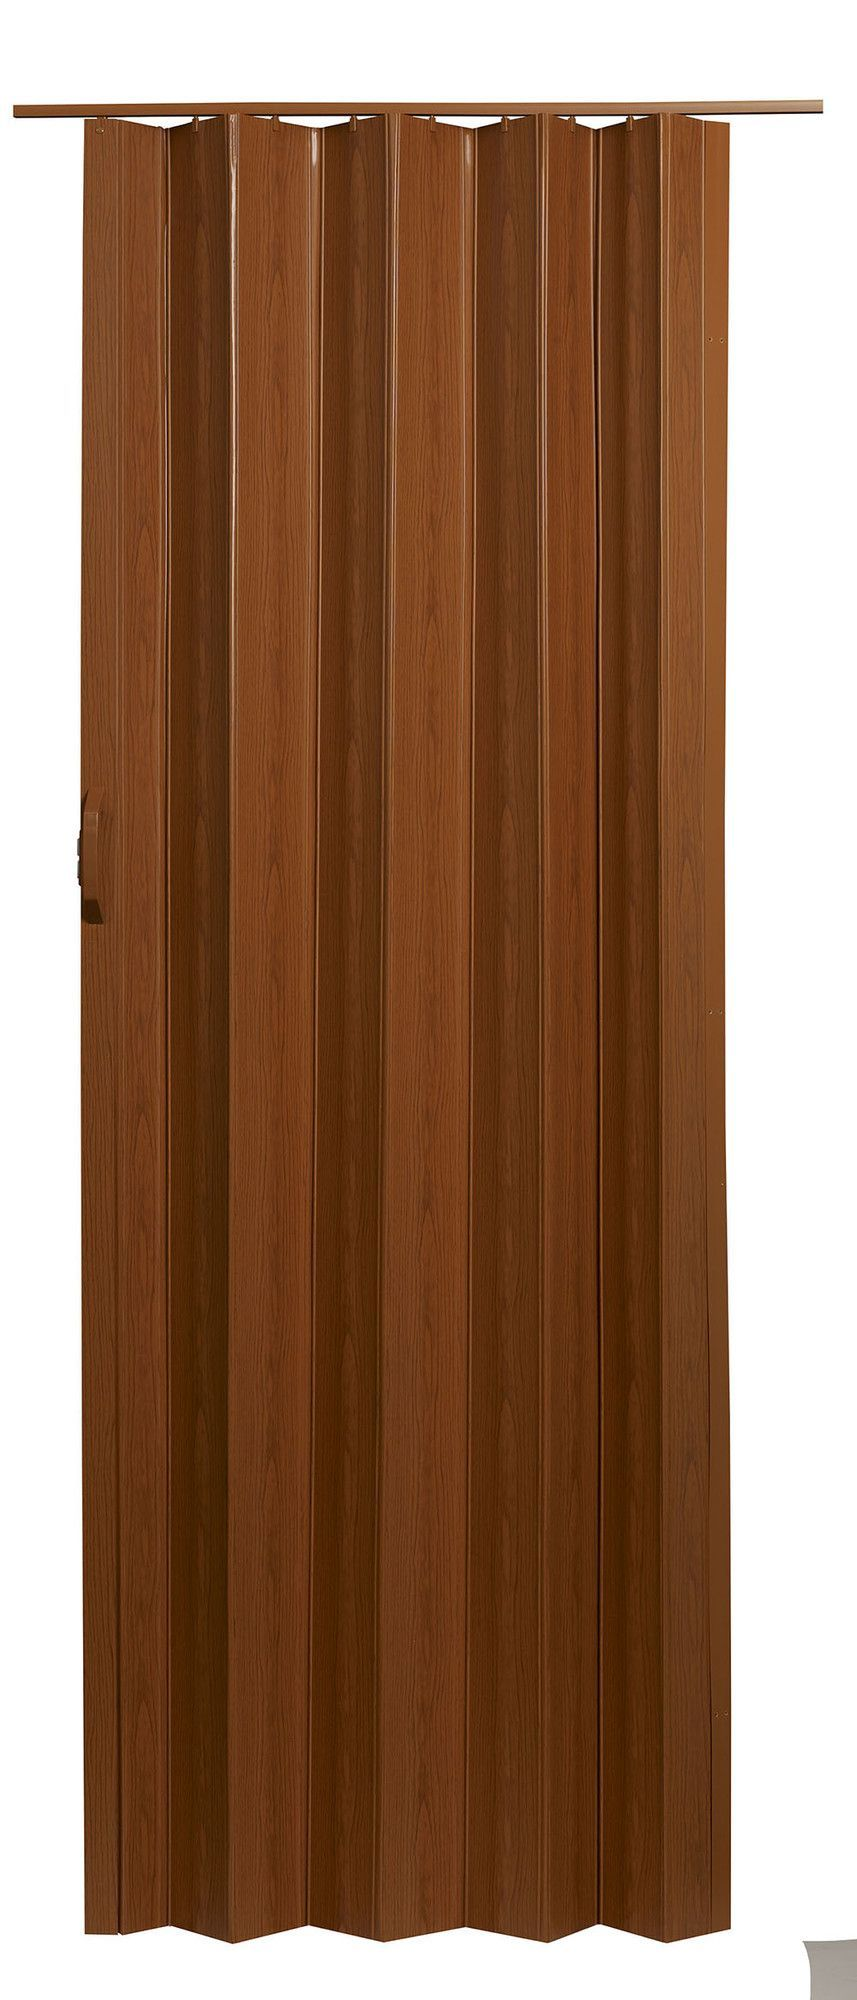 Oakmont vinyl espresso accordion door pinterest spectrum and doors also in  rh